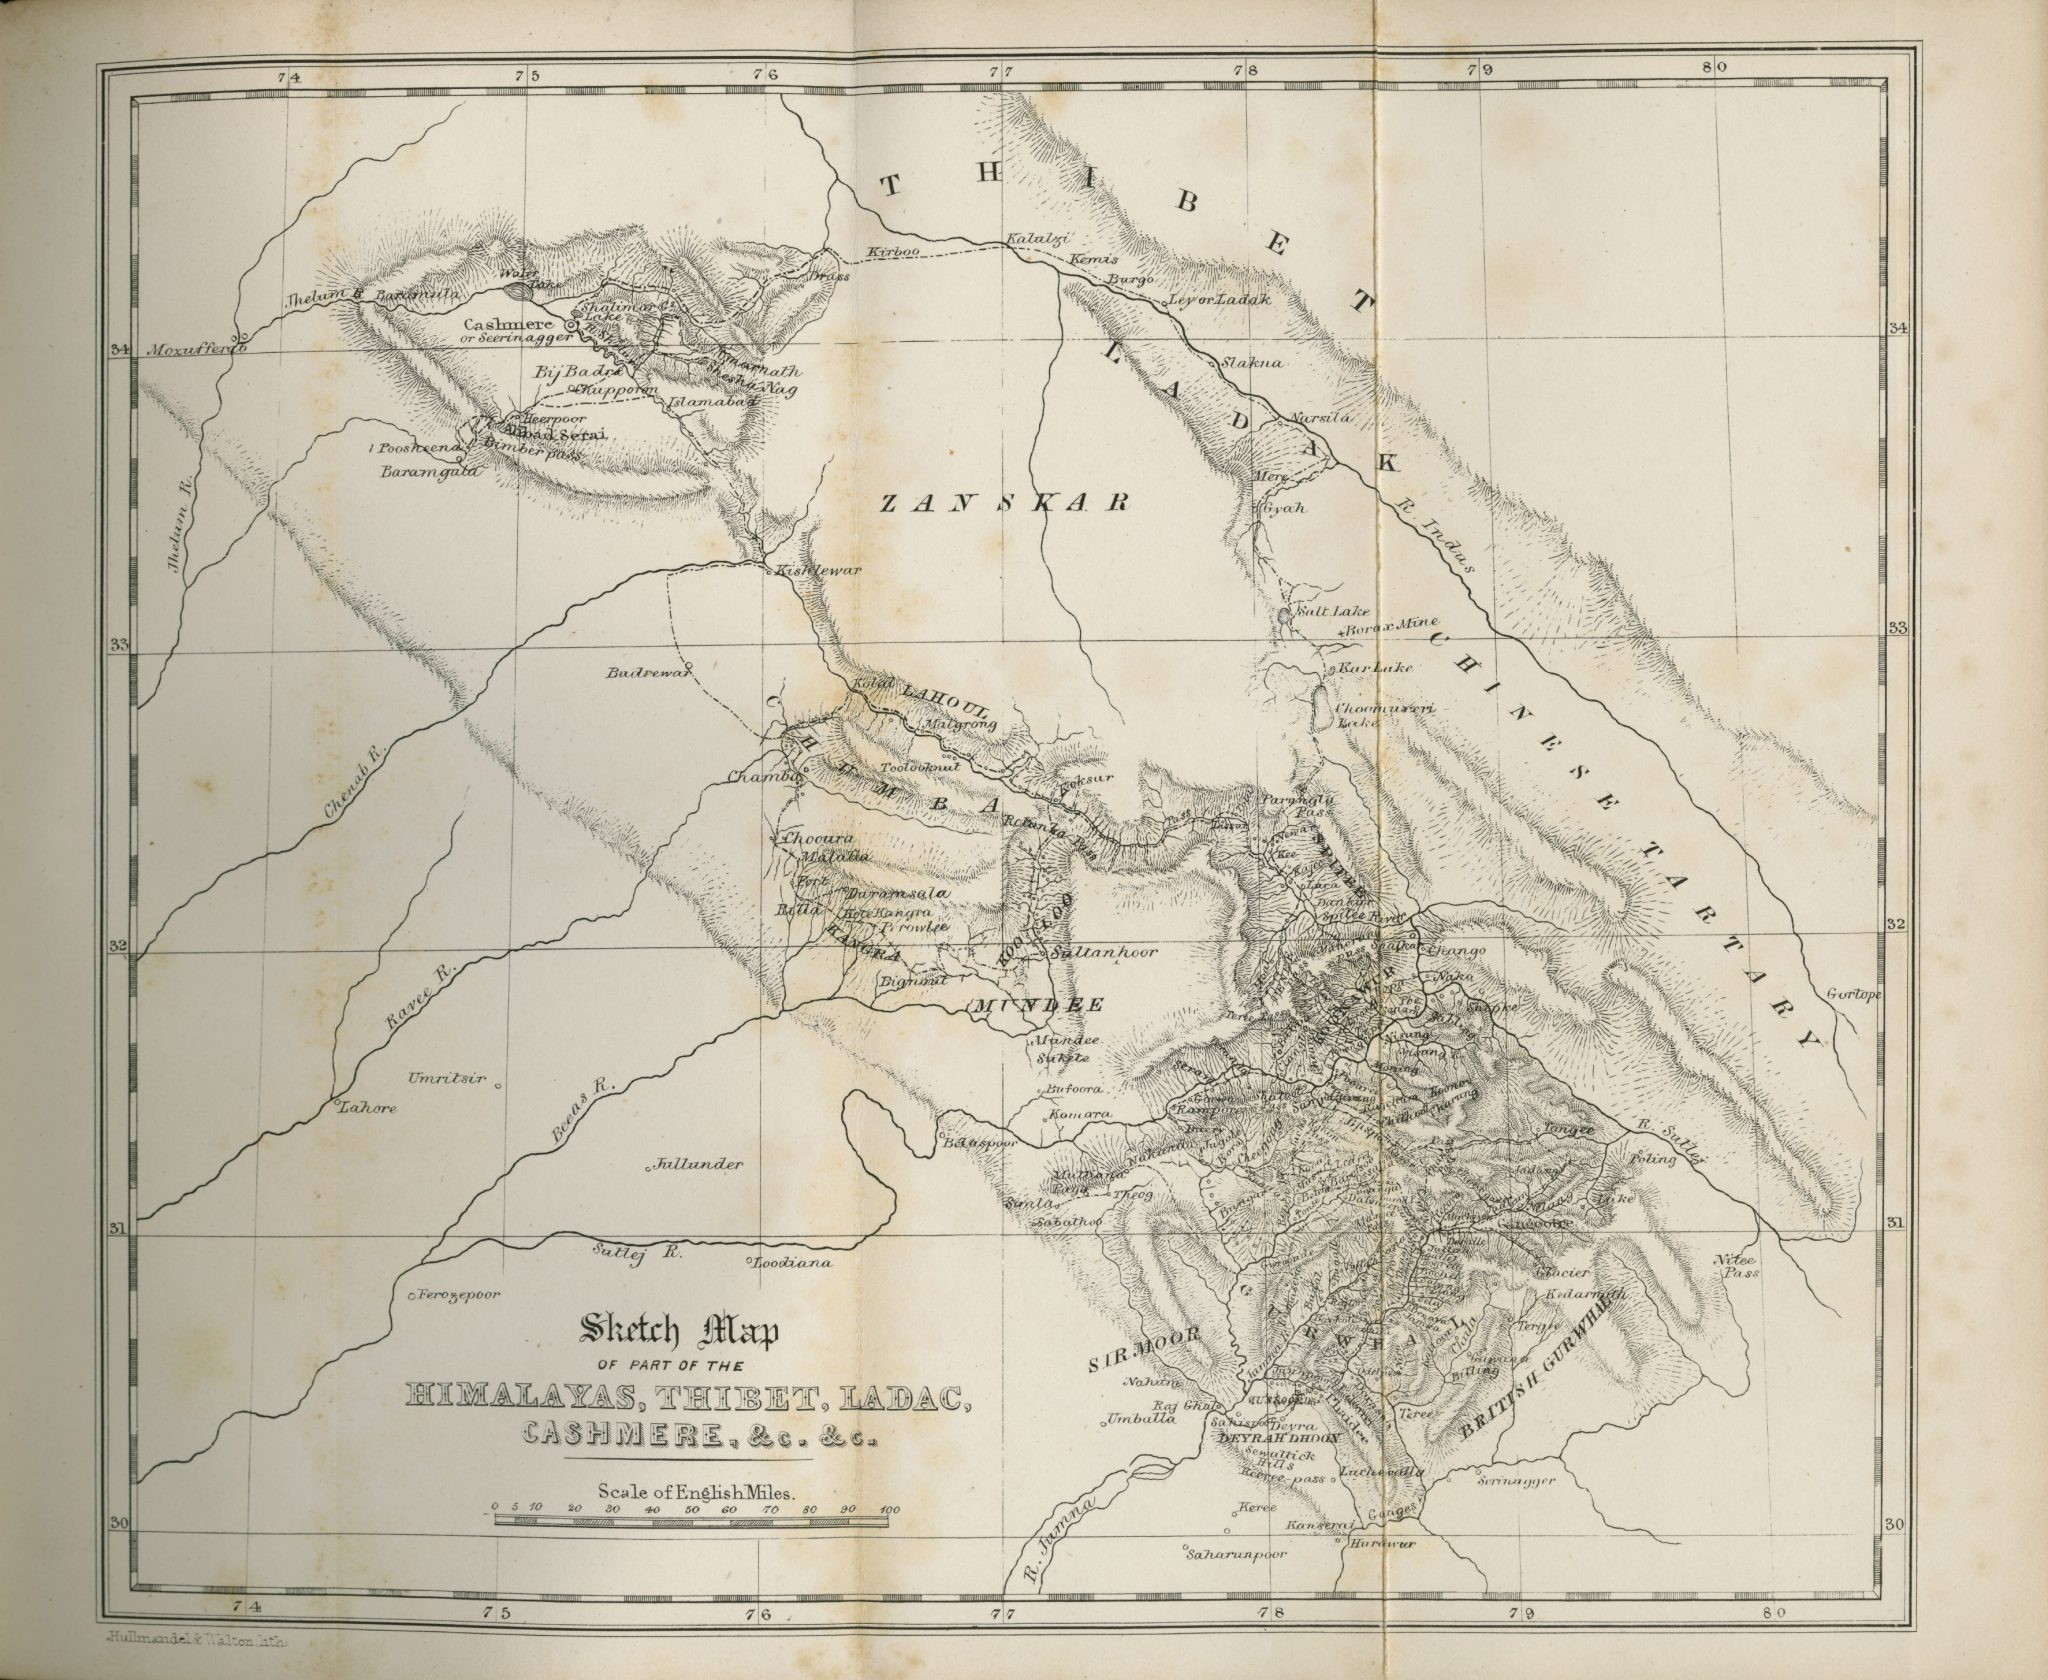 Sketch Map of part of the Himalayas, Thibet, Ladac, Cashmere, etc 1854